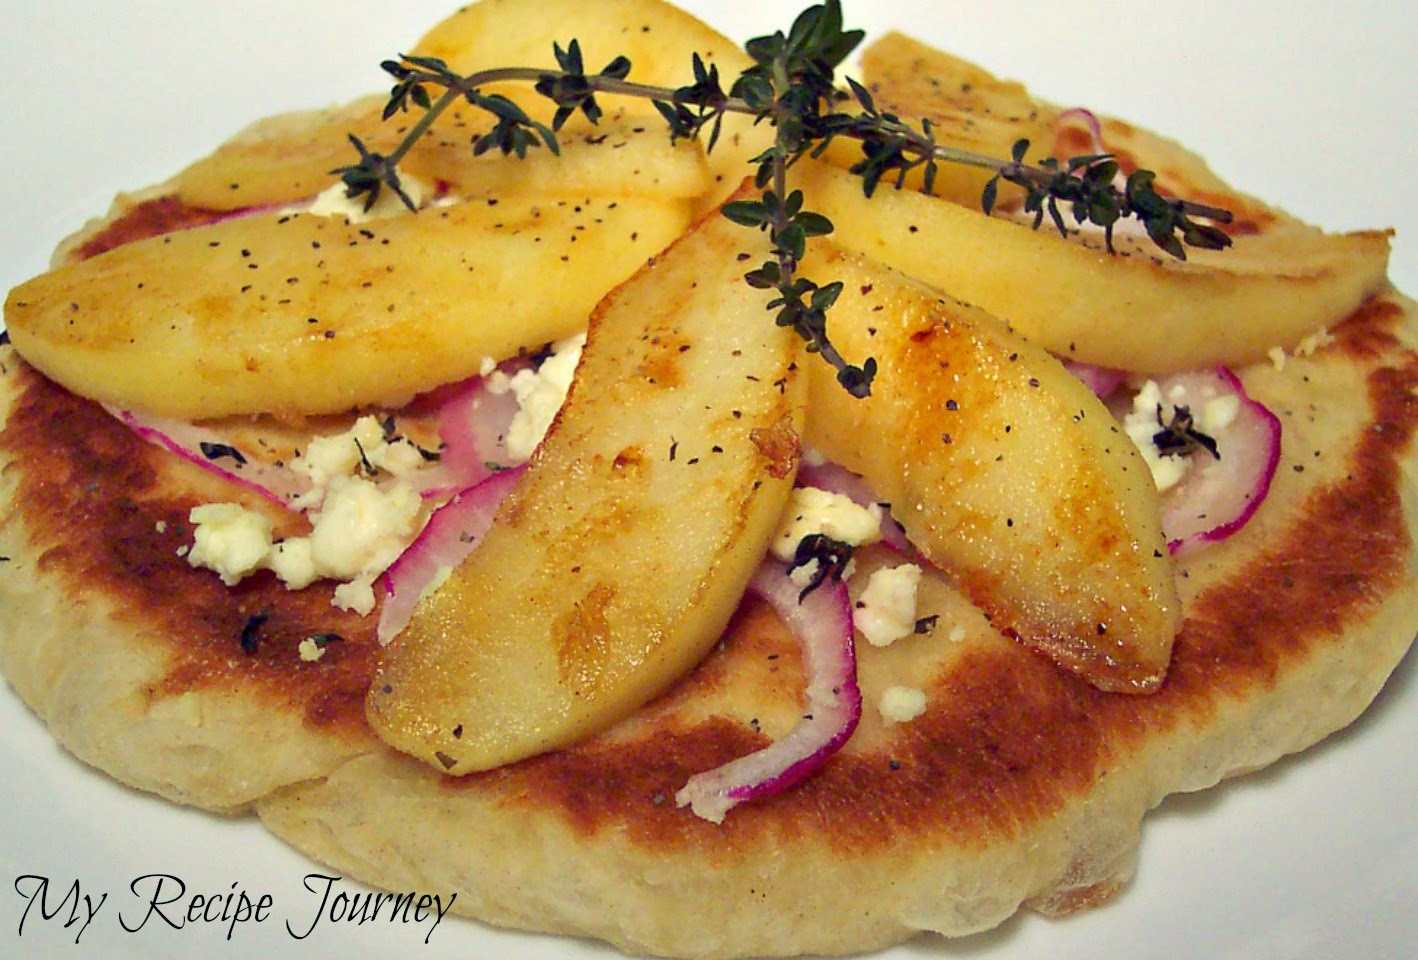 Apple and Feta Pan Fried Pizzas